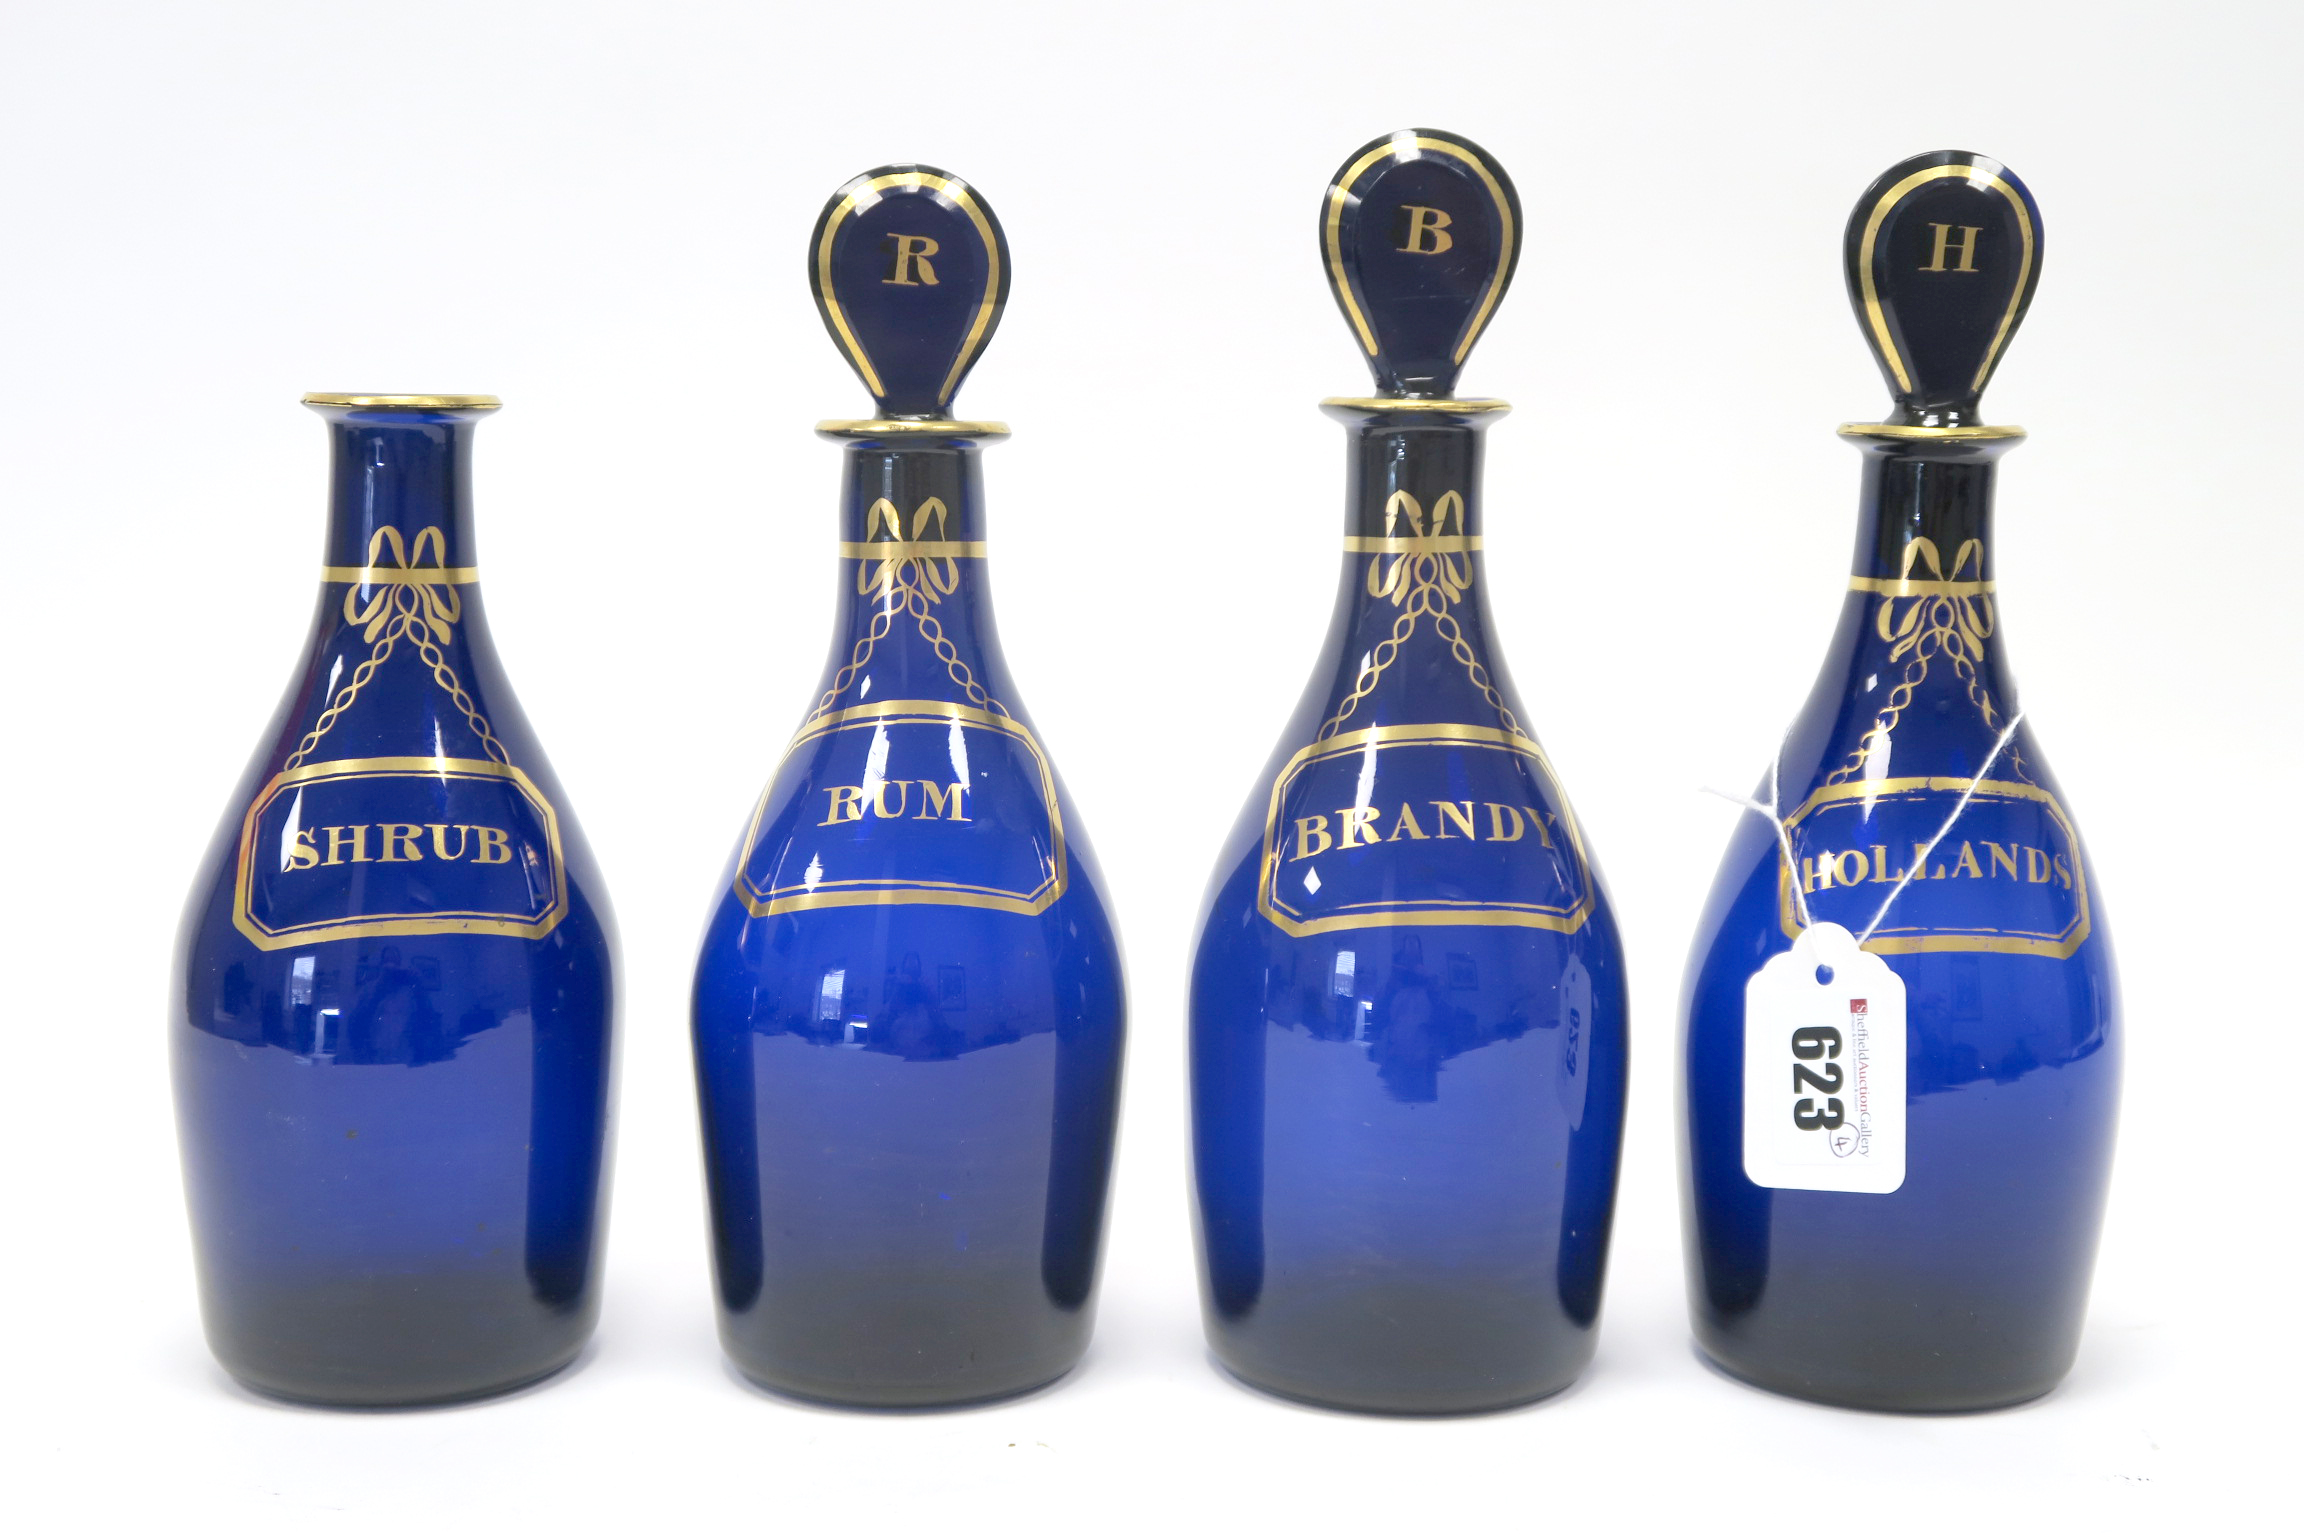 Lot 623 - A Set of Four Early XIX Century 'Bristol' Blue Decanters, of mallet form, with three bulls eye